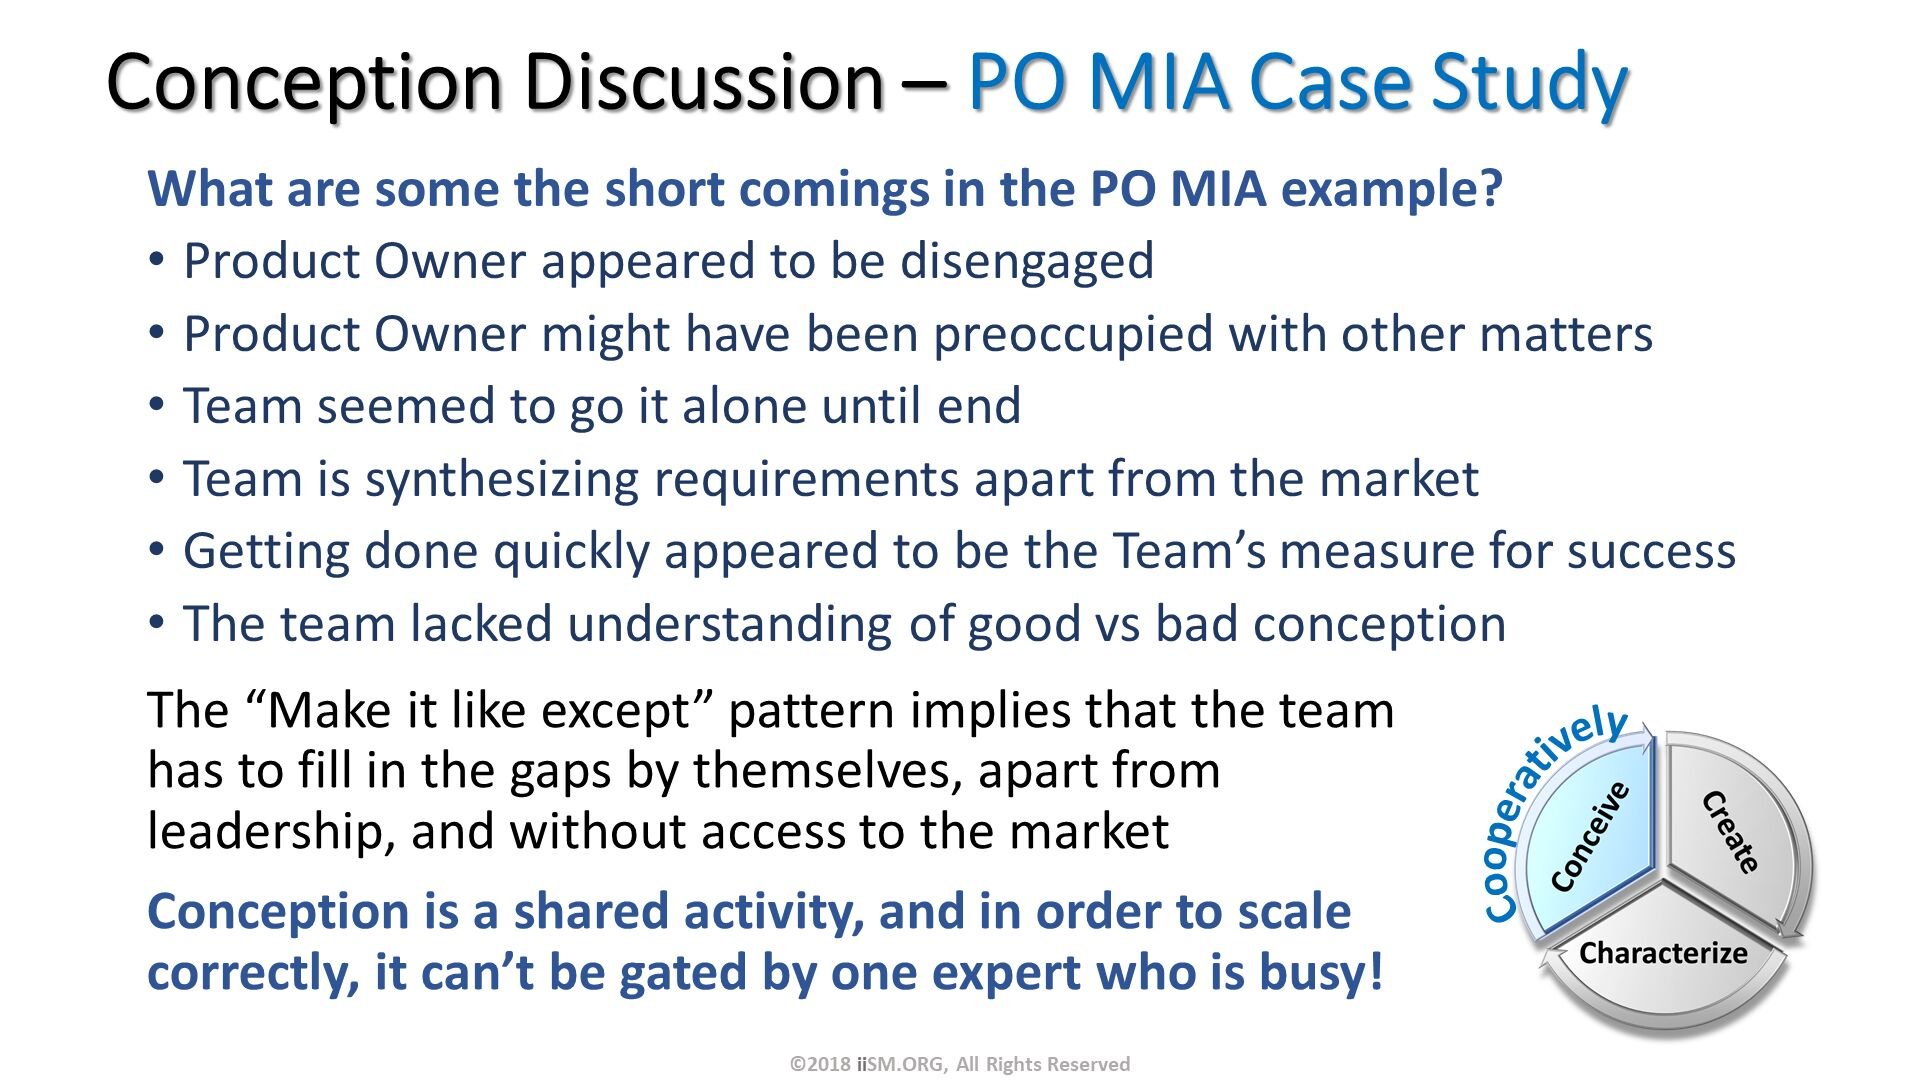 "What are some the short comings in the PO MIA example? Product Owner appeared to be disengaged Product Owner might have been preoccupied with other matters Team seemed to go it alone until end Team is synthesizing requirements apart from the market Getting done quickly appeared to be the Team's measure for success The team lacked understanding of good vs bad conception. Conception Discussion – PO MIA Case Study. The ""Make it like except"" pattern implies that the team has to fill in the gaps by themselves, apart from leadership, and without access to the market Conception is a shared activity, and in order to scale correctly, it can't be gated by one expert who is busy!. ©2018 iiSM.ORG, All Rights Reserved. Cooperatively."